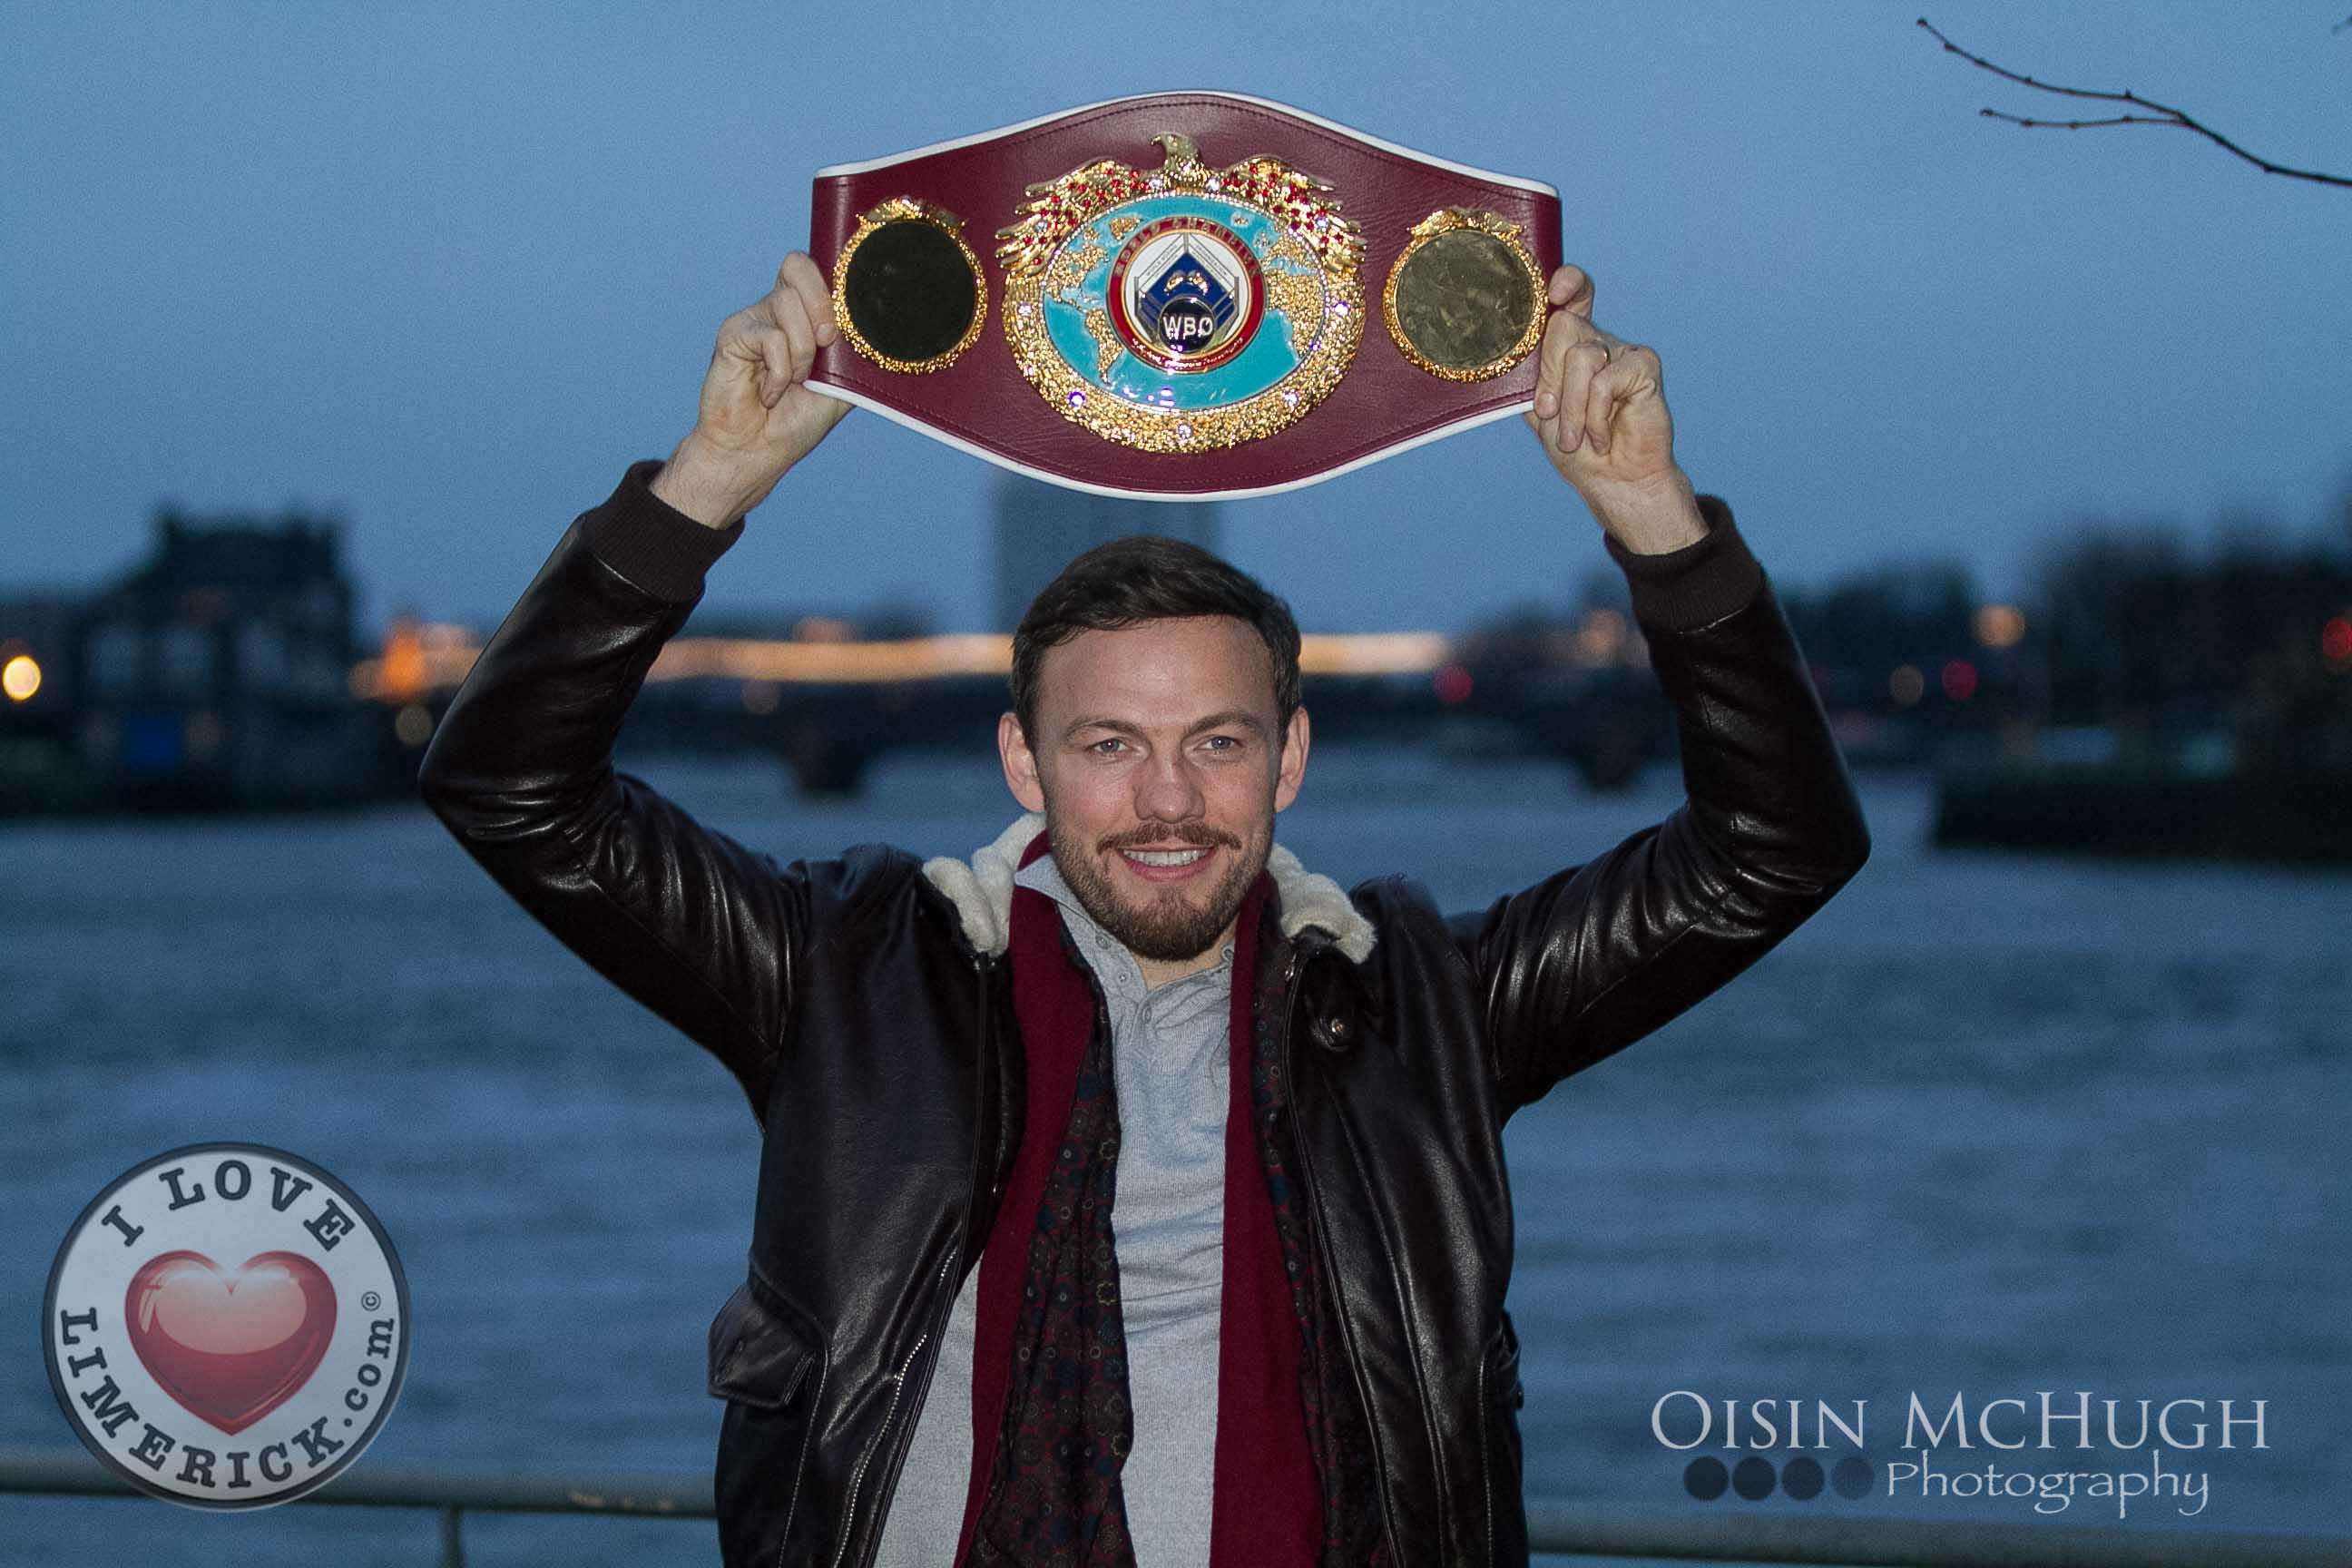 Andy Lee St Francis Boxing Club return. 'A City's Love Affair' produced by Eric Moylan starring Andy Lee